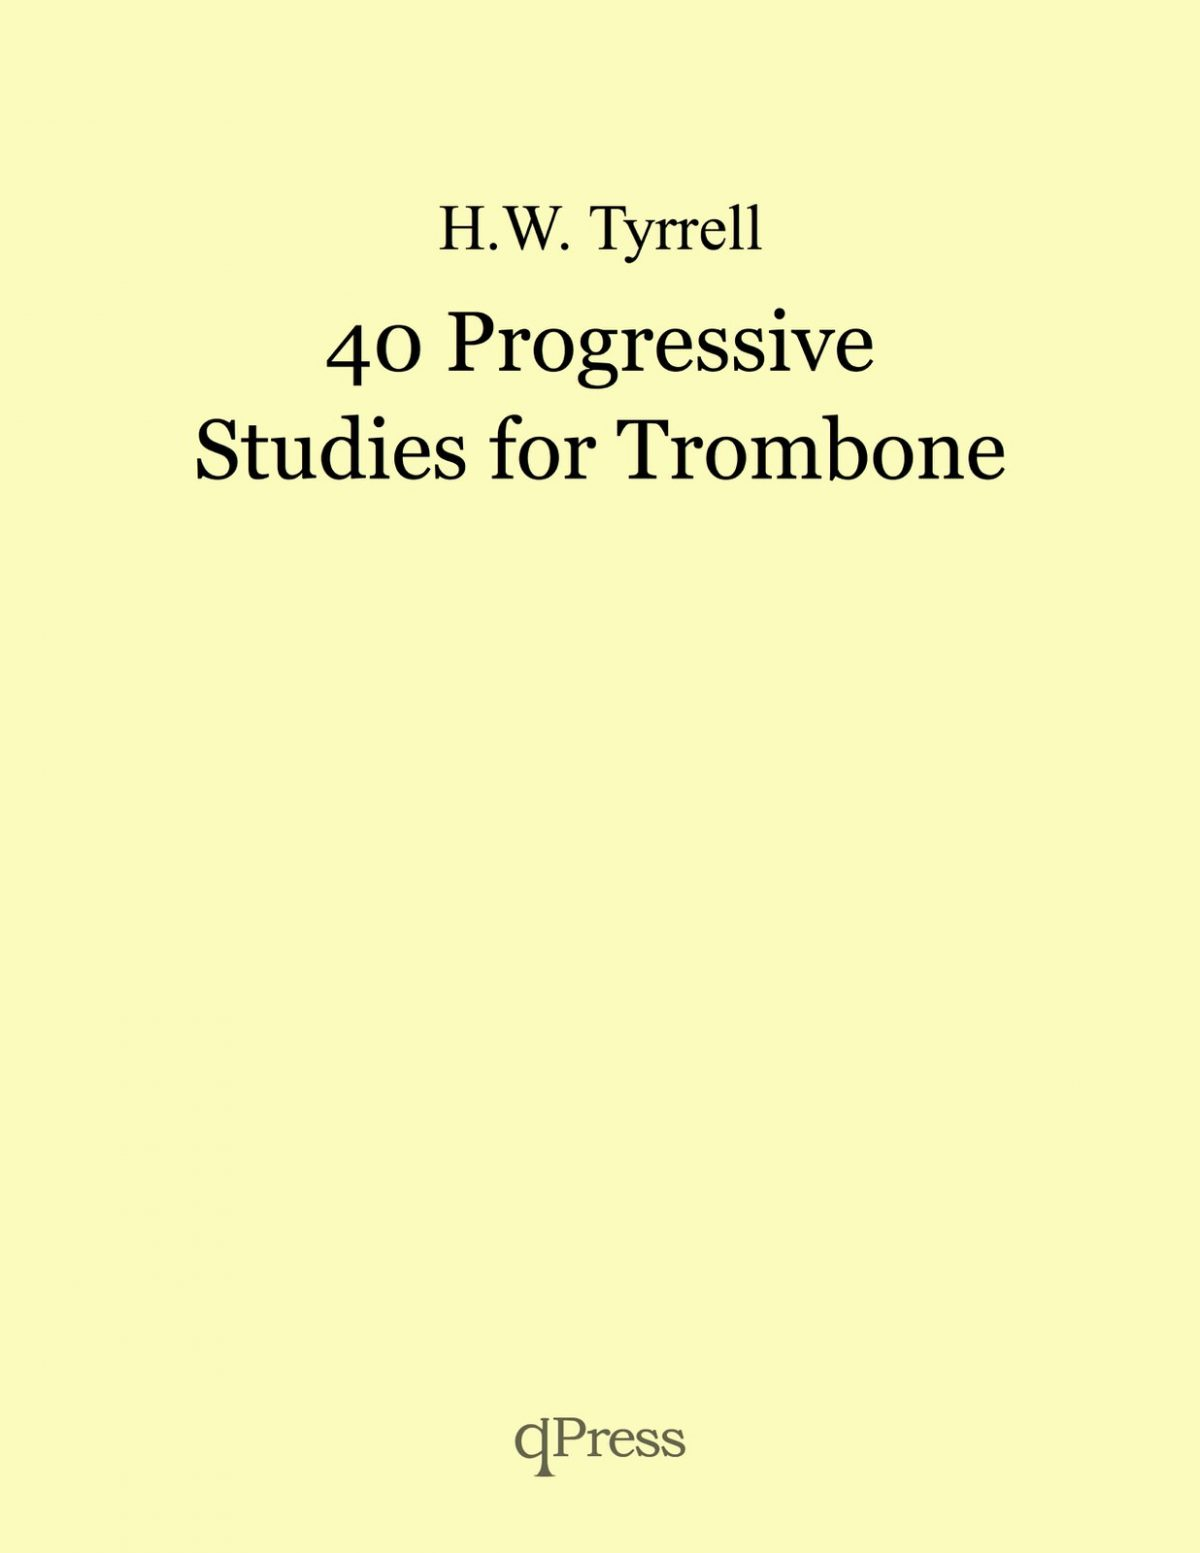 Tyrrell, 40 Progressive Studies for Trombone-p01